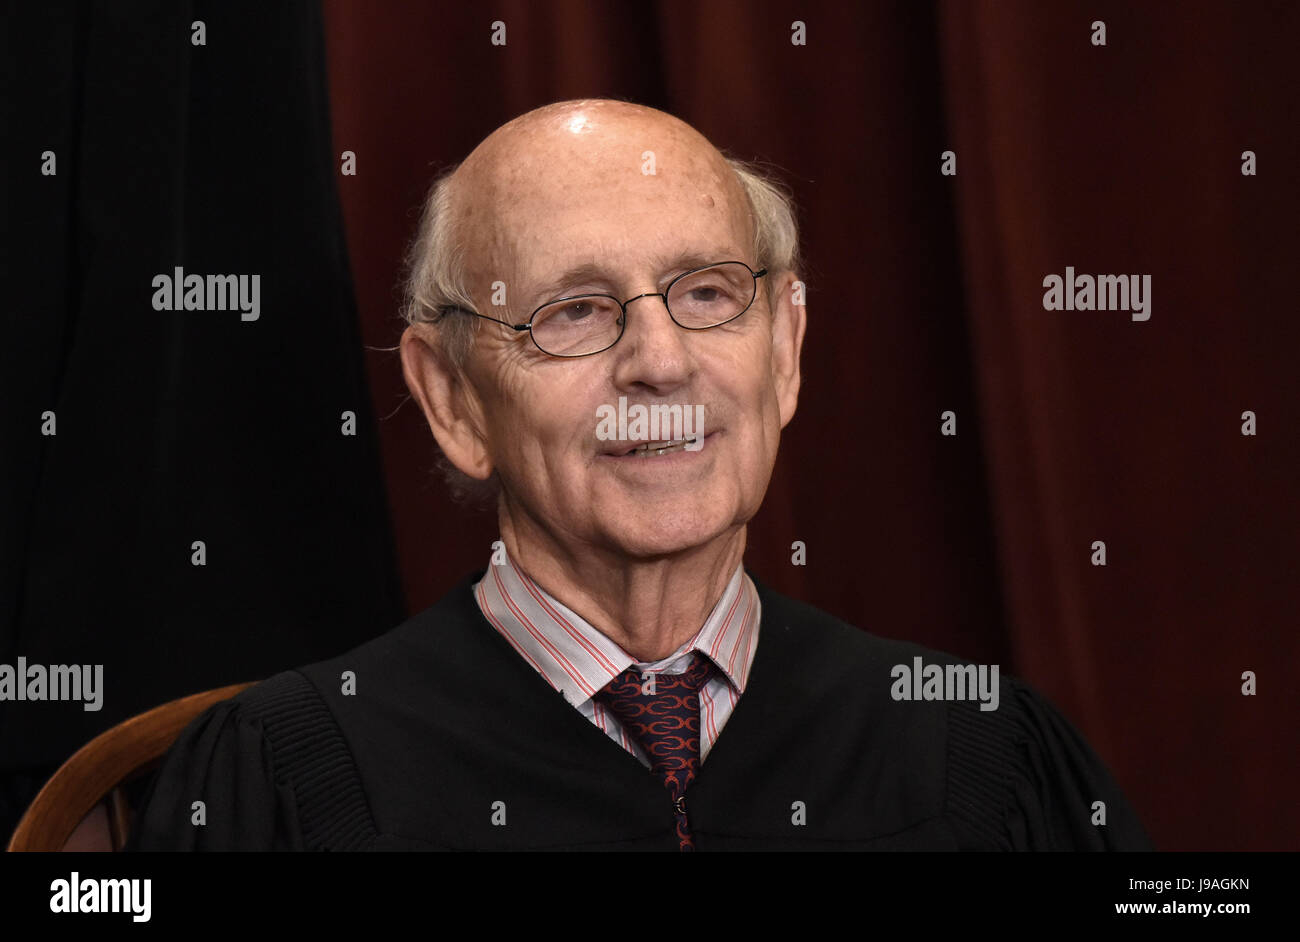 Associate Justice Stephen Breyer poses for a group photograph at the Supreme Court building on June 1 2017 in Washington, - Stock Image